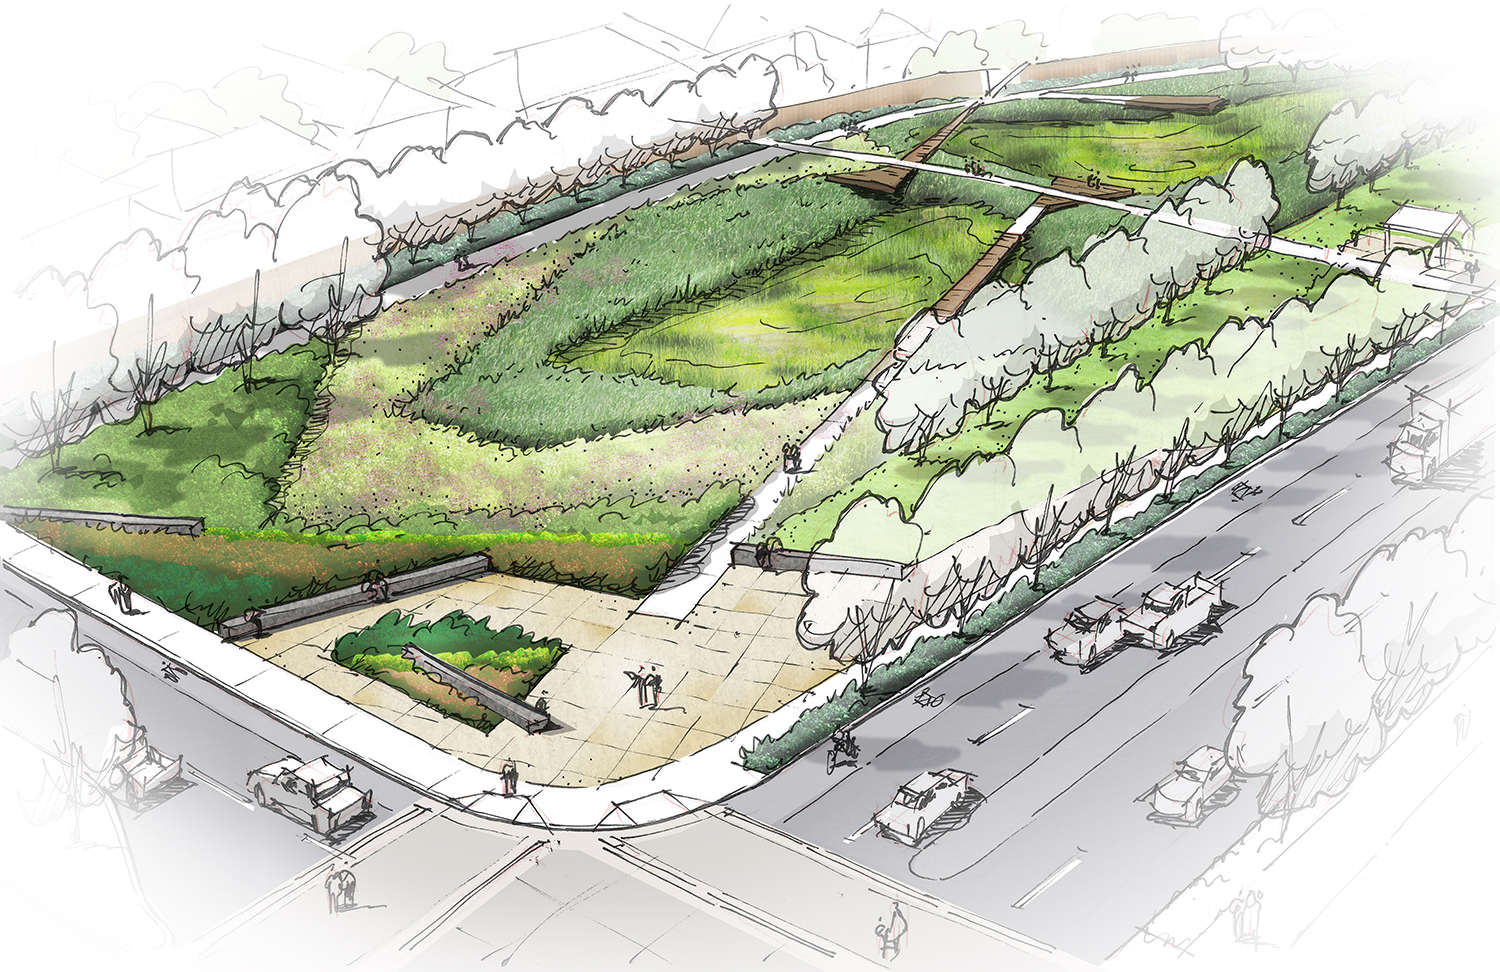 reed's crossing conceptual drawing of central rectangular stormwater greenspace with trails and homes surrounding